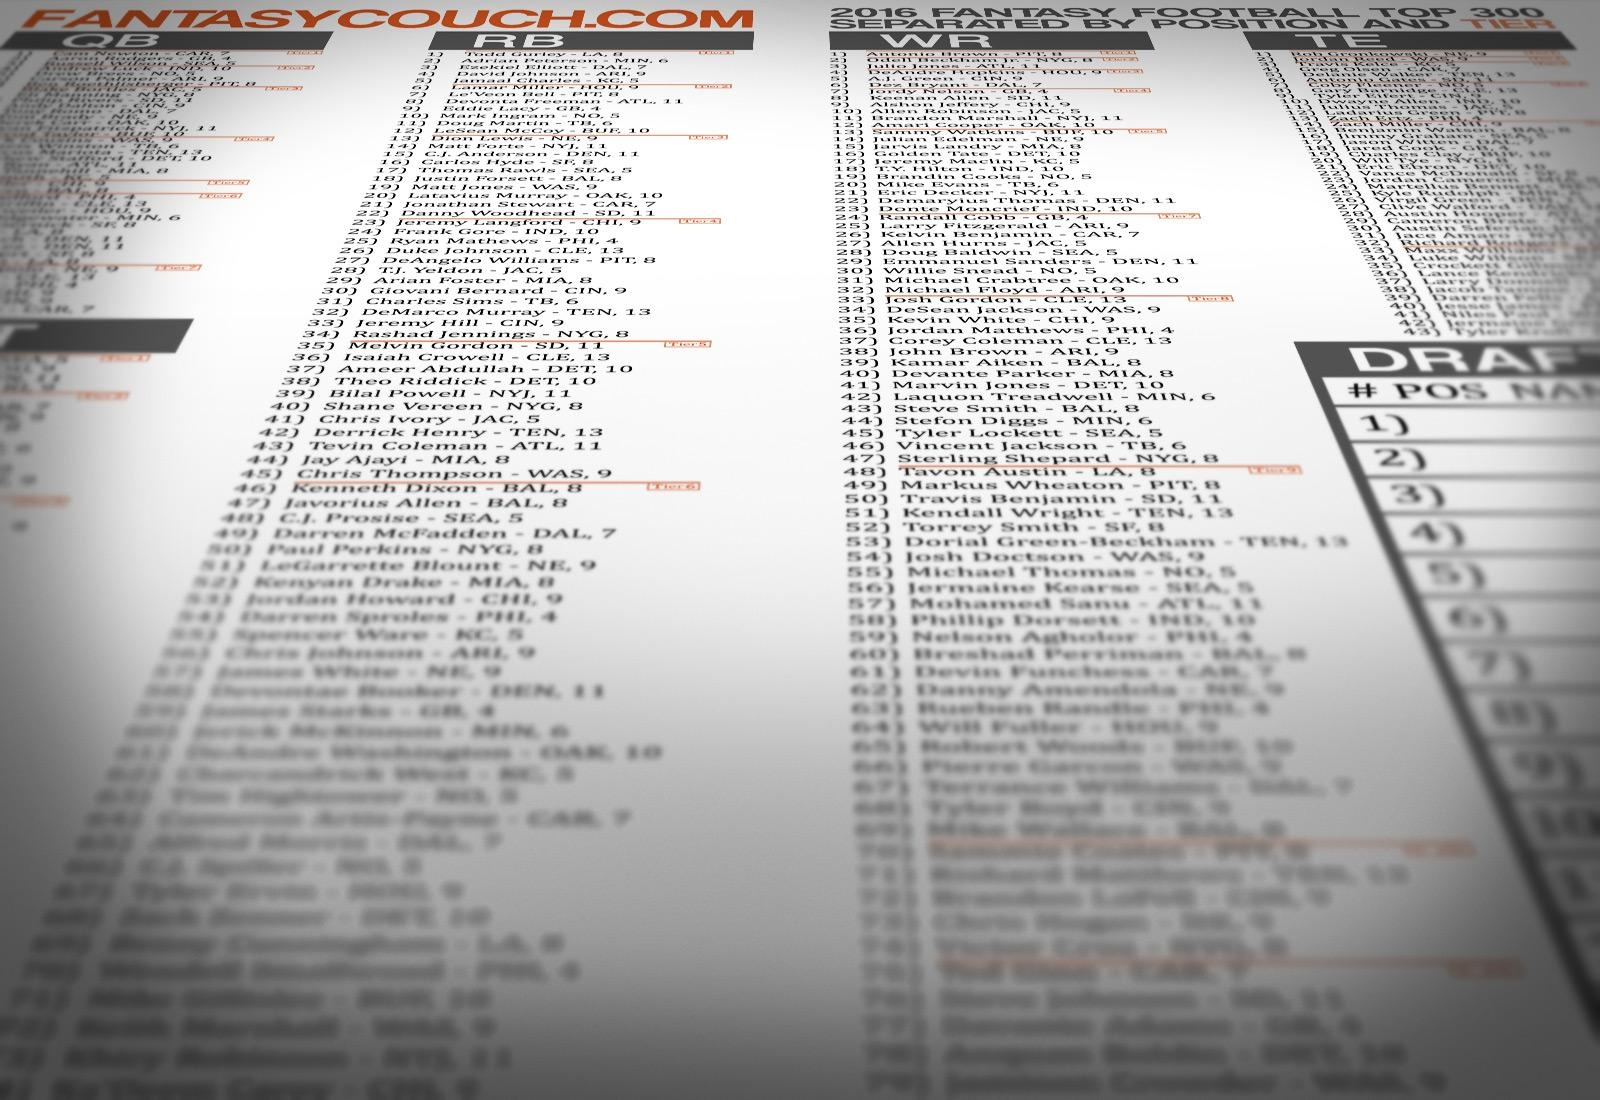 Top 300 List - Fantasy Football 2018 Cheat Sheet - Free Printable Fantasy Football Cheat Sheets